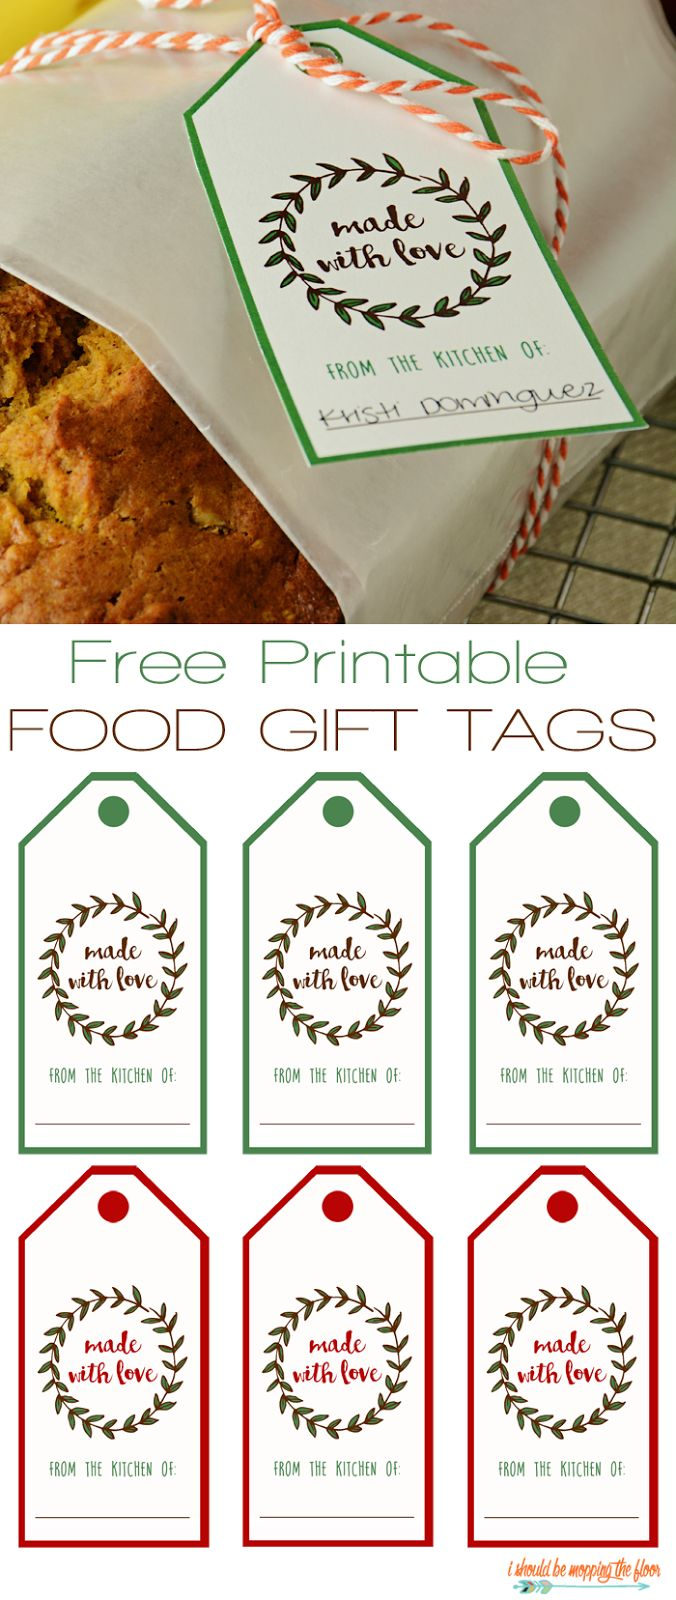 Free Printable Food Gift Tags Awesome Things Pinterest Gift Tags Gifts And Food Gifts